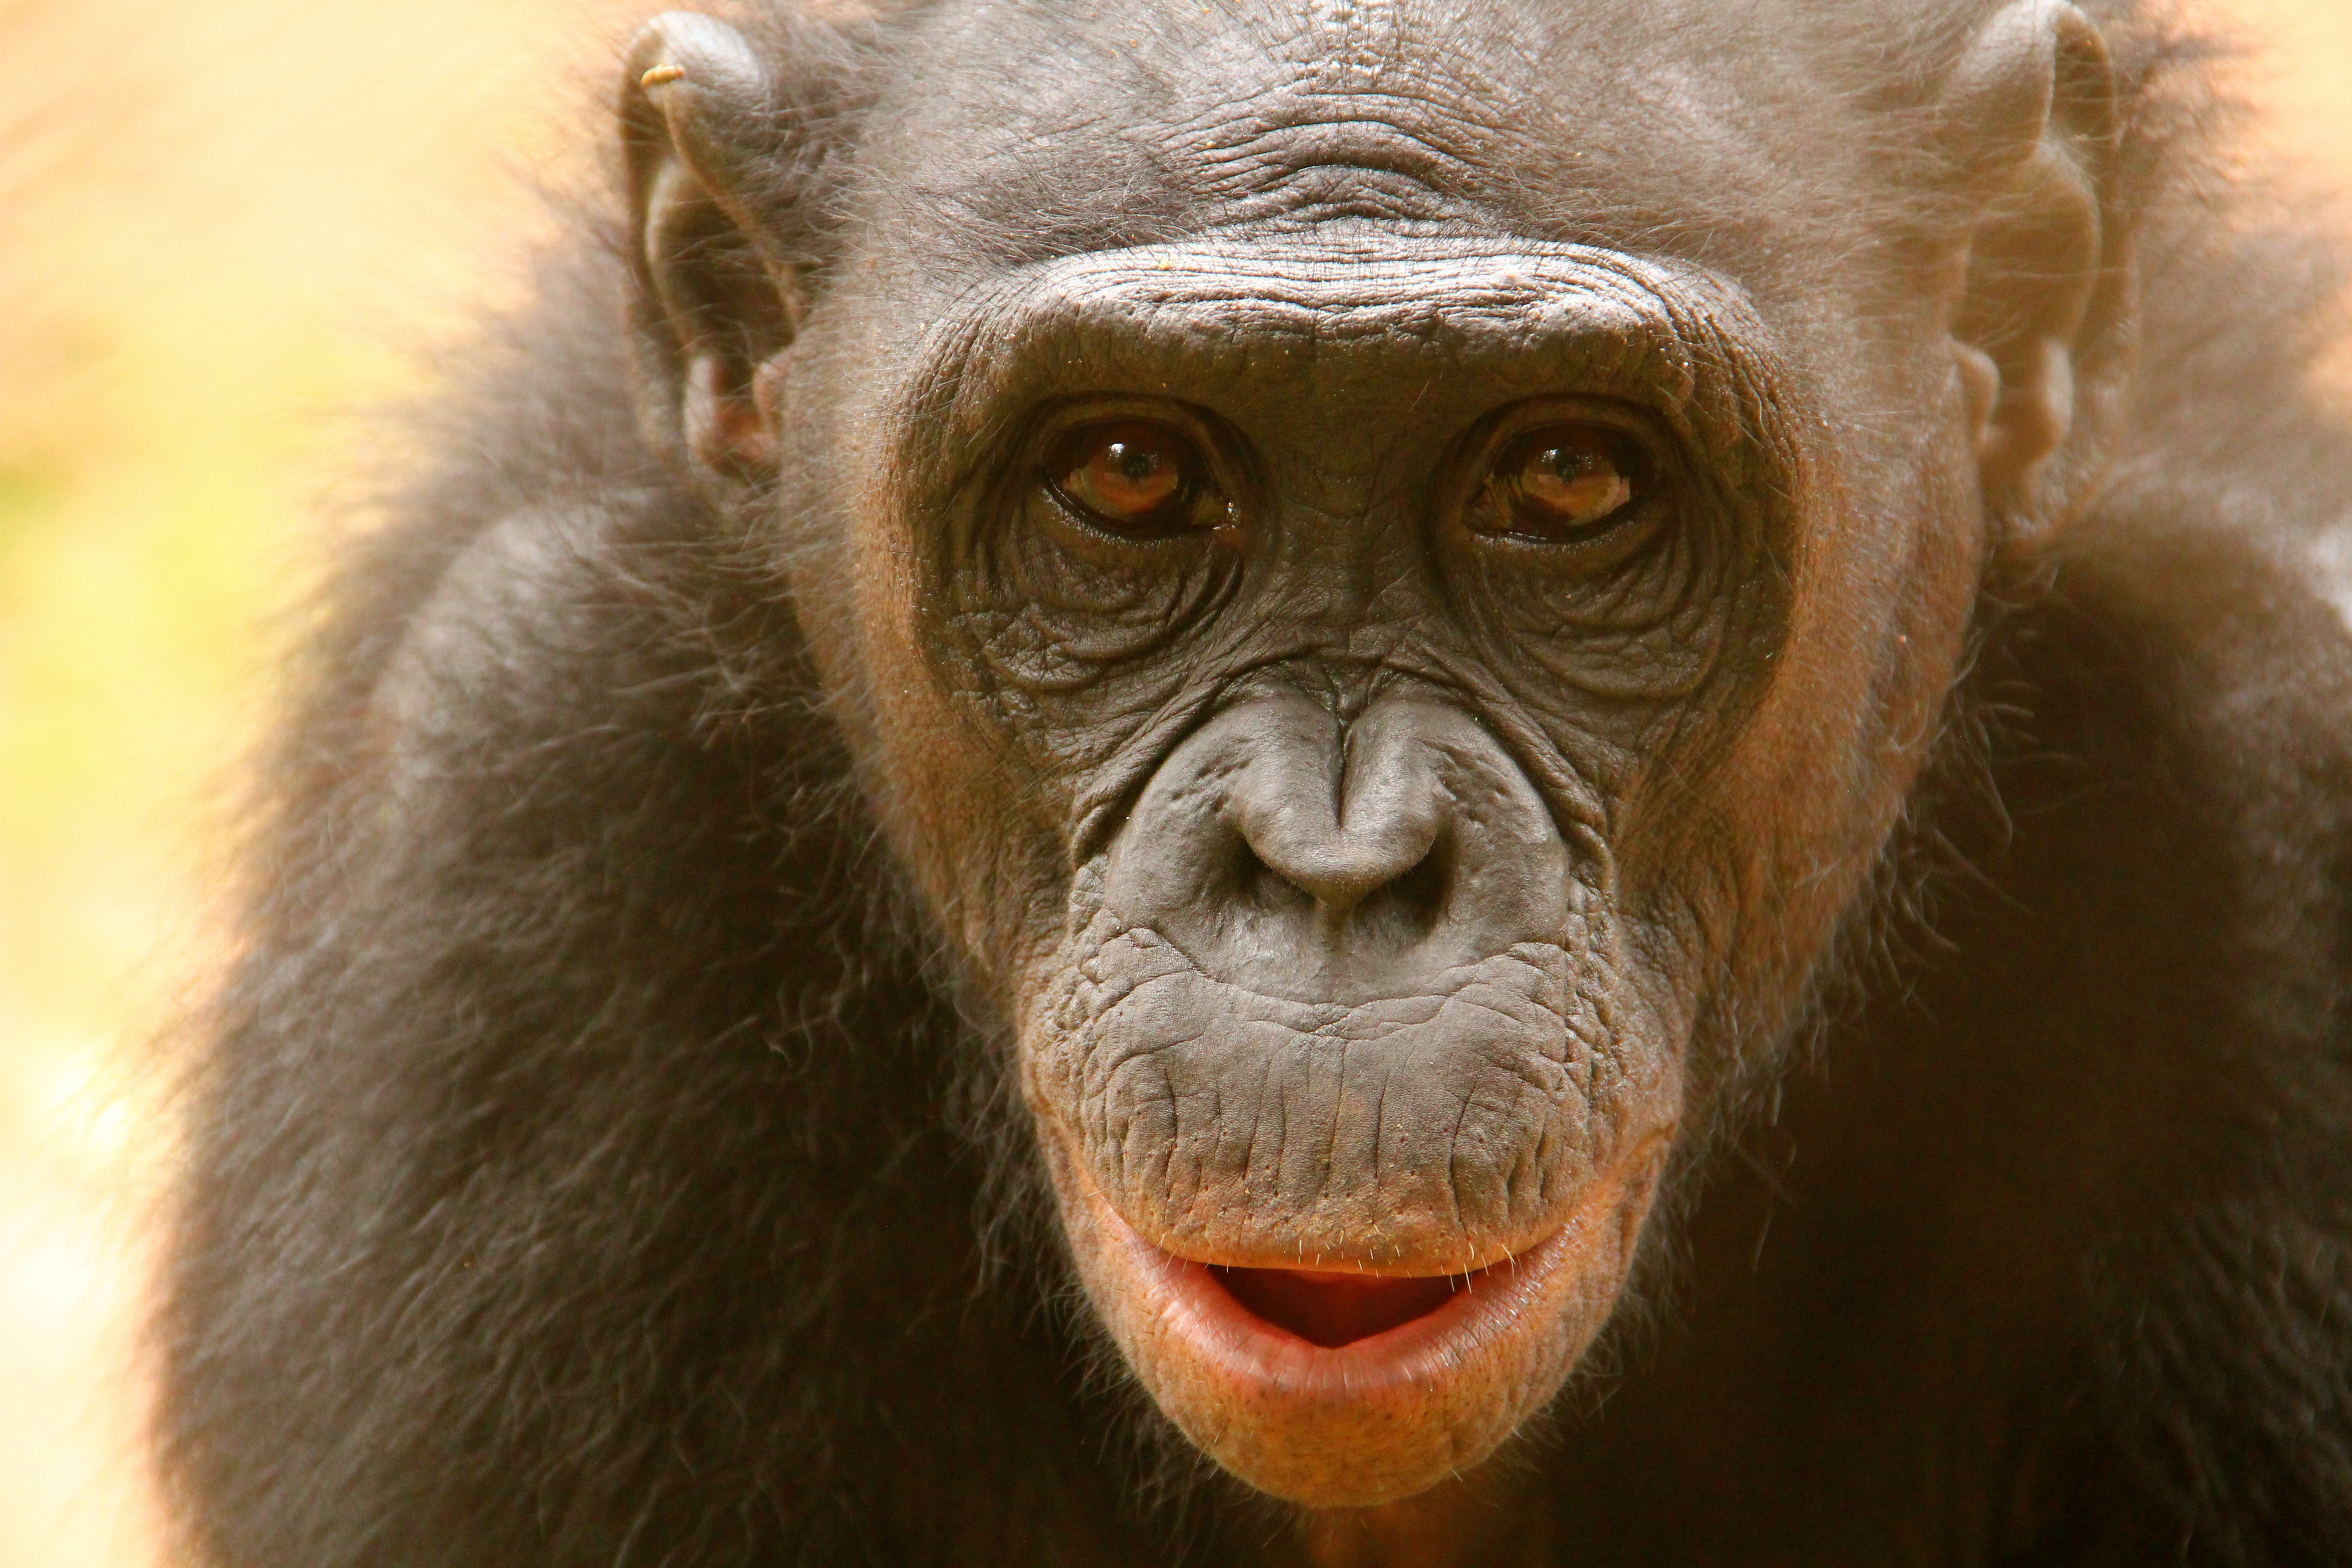 Bonobo at Lola ya Bonobo sanctuary, DRCongo